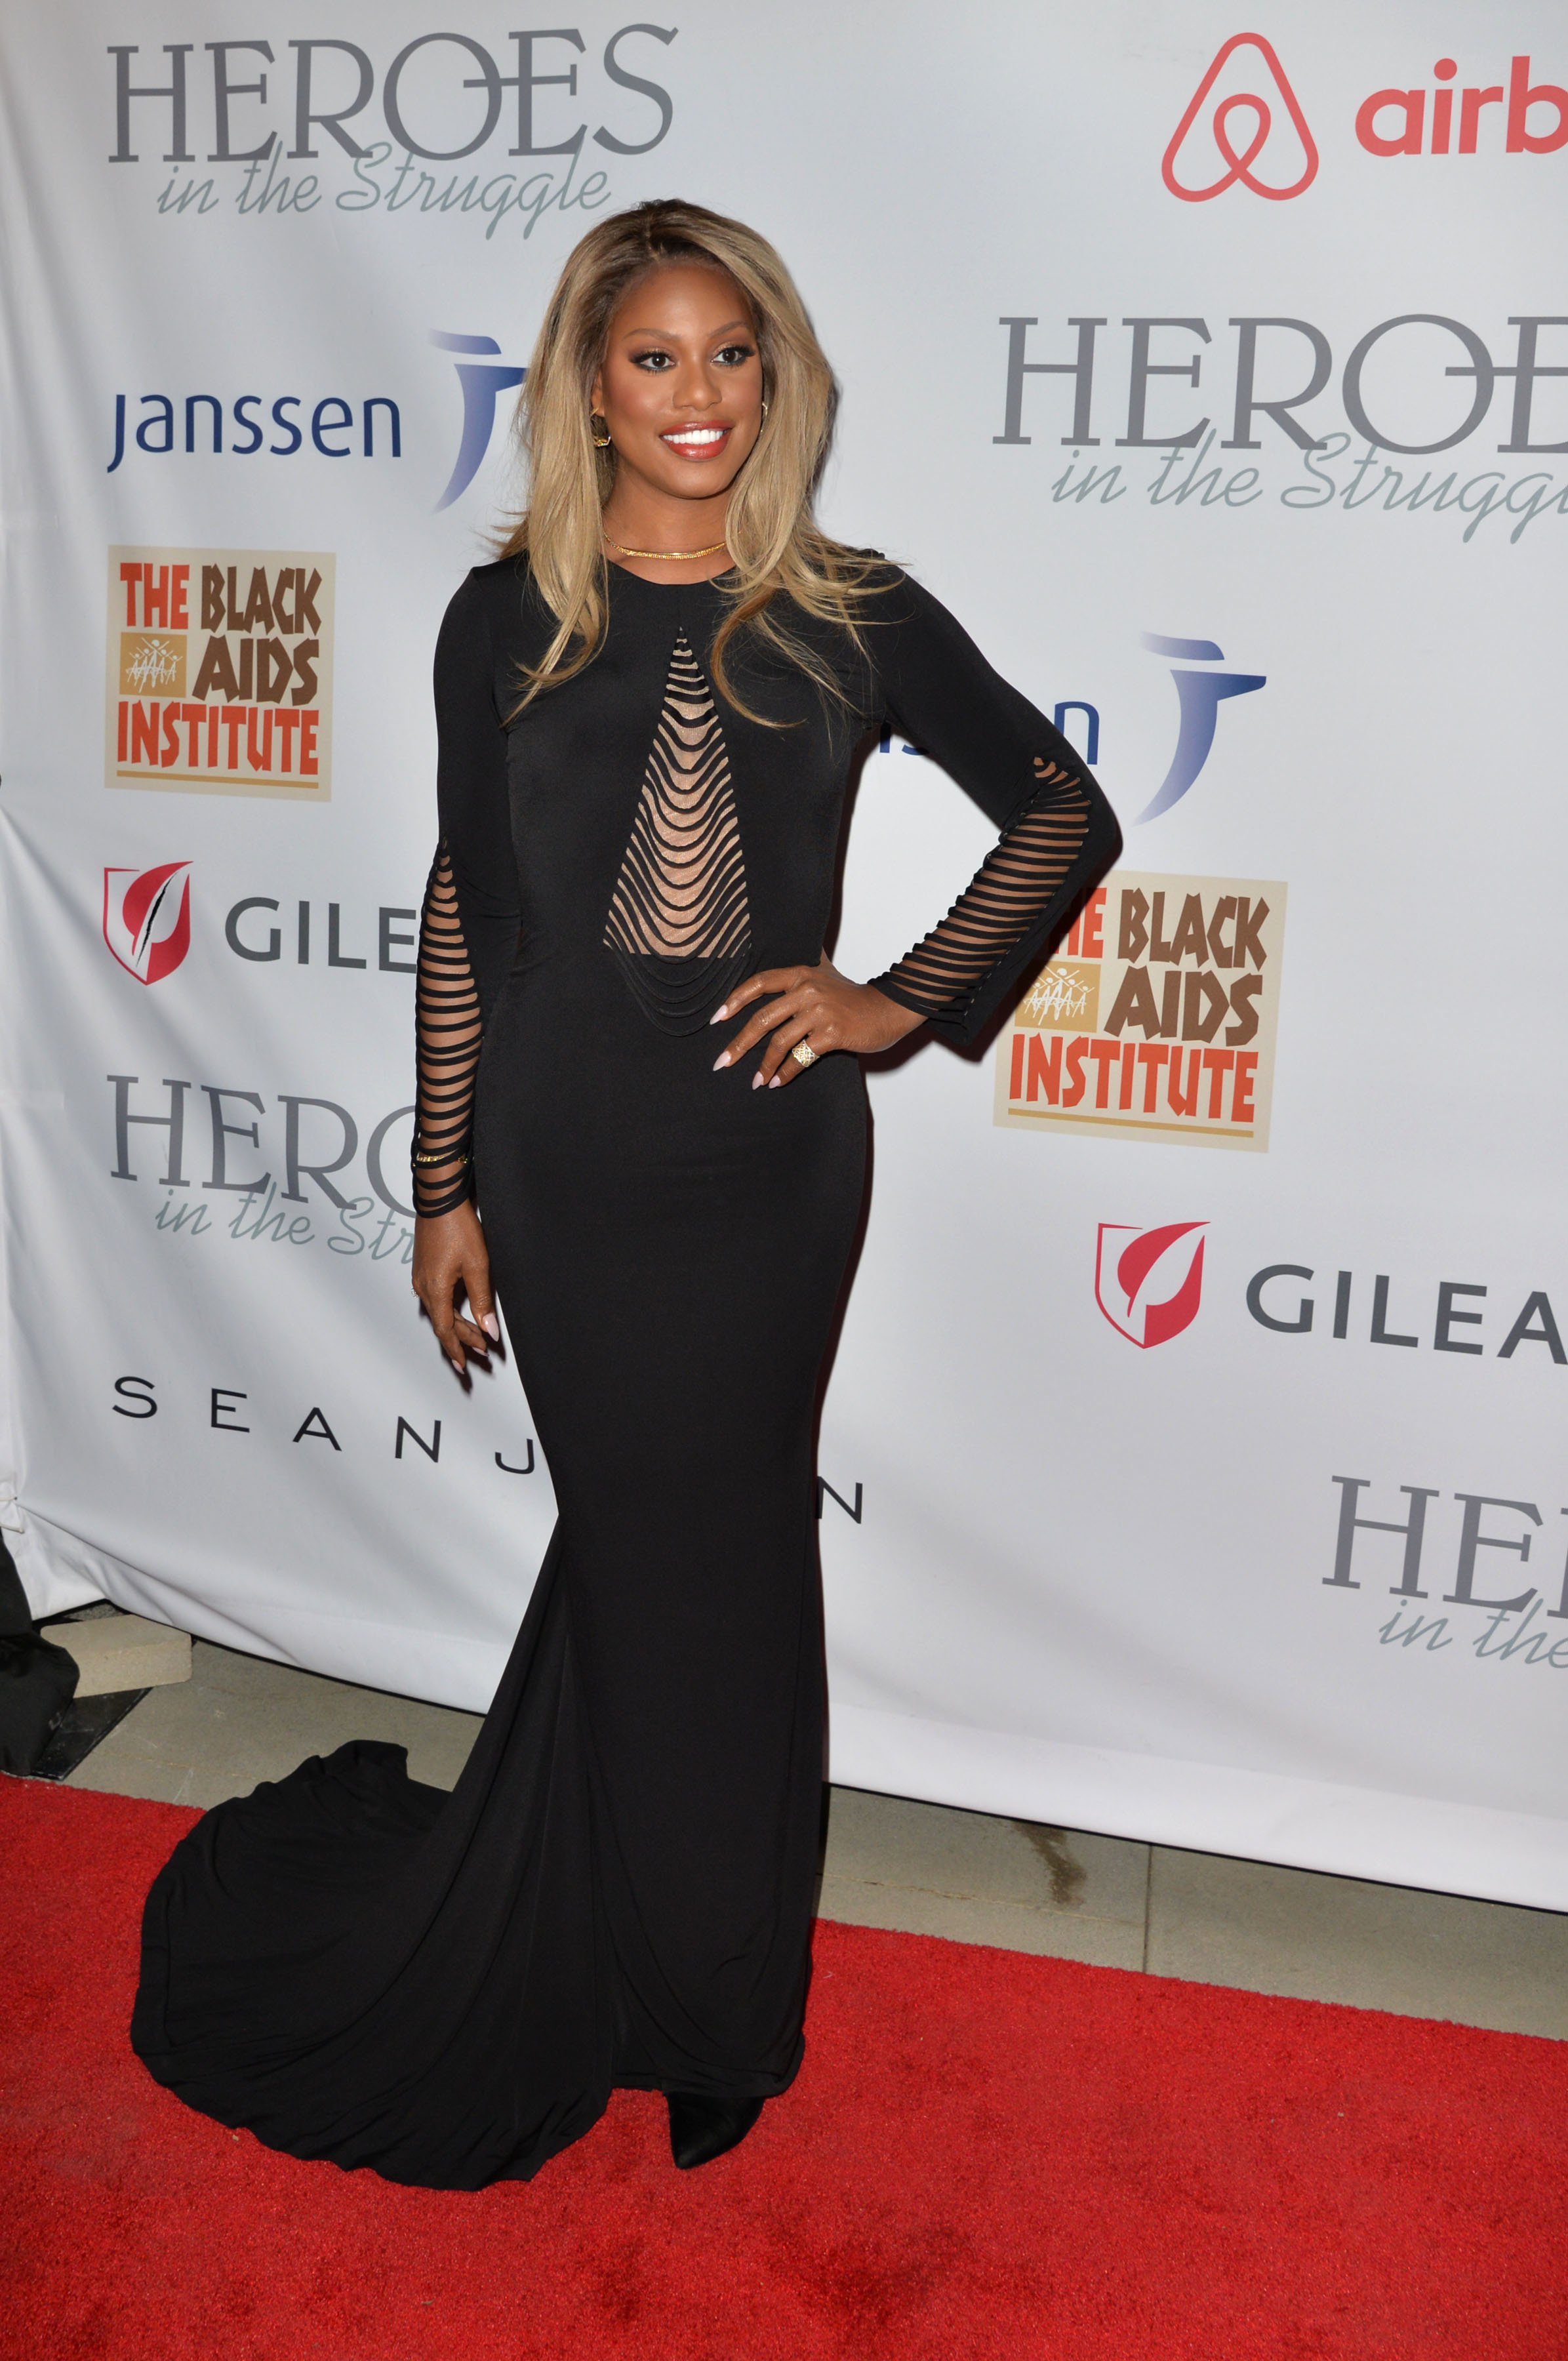 Laverne Cox attends the 16th Annual Heroes in the Struggle Awards in Los Angeles on Sept. 16, 2017.